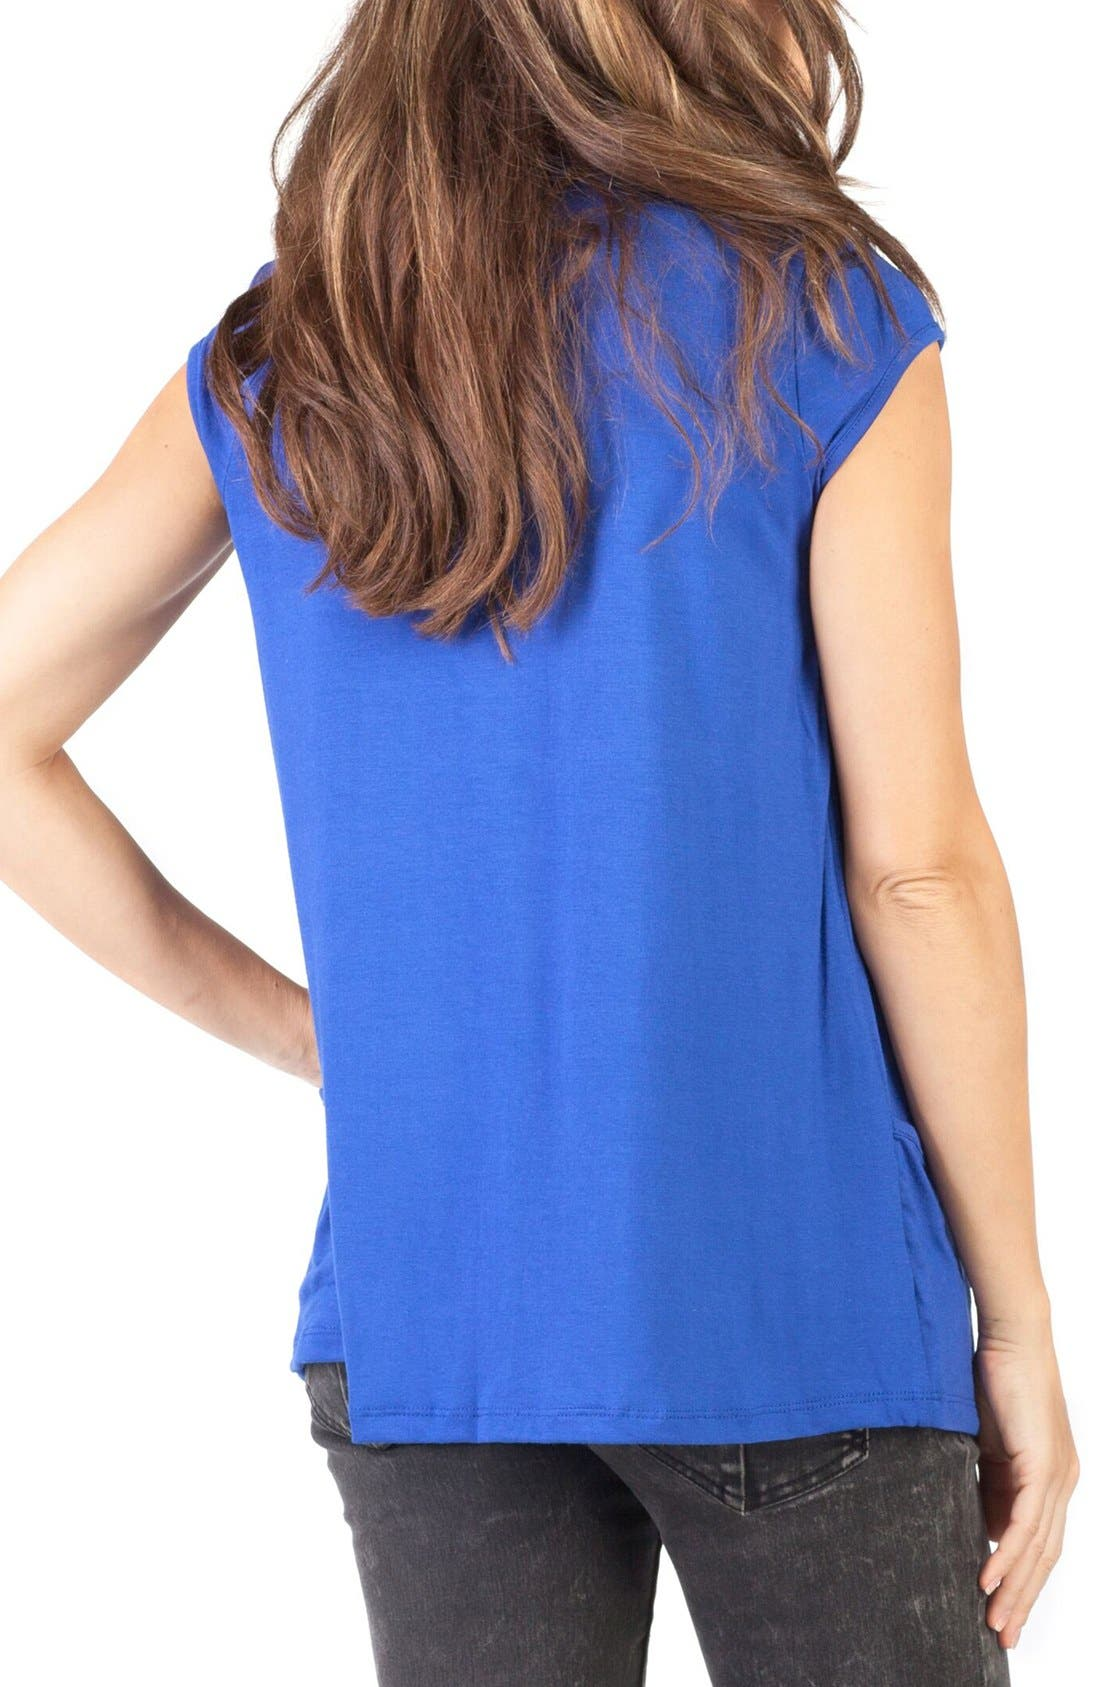 'The Babydoll' Maternity Nursing Top,                             Alternate thumbnail 3, color,                             Blue